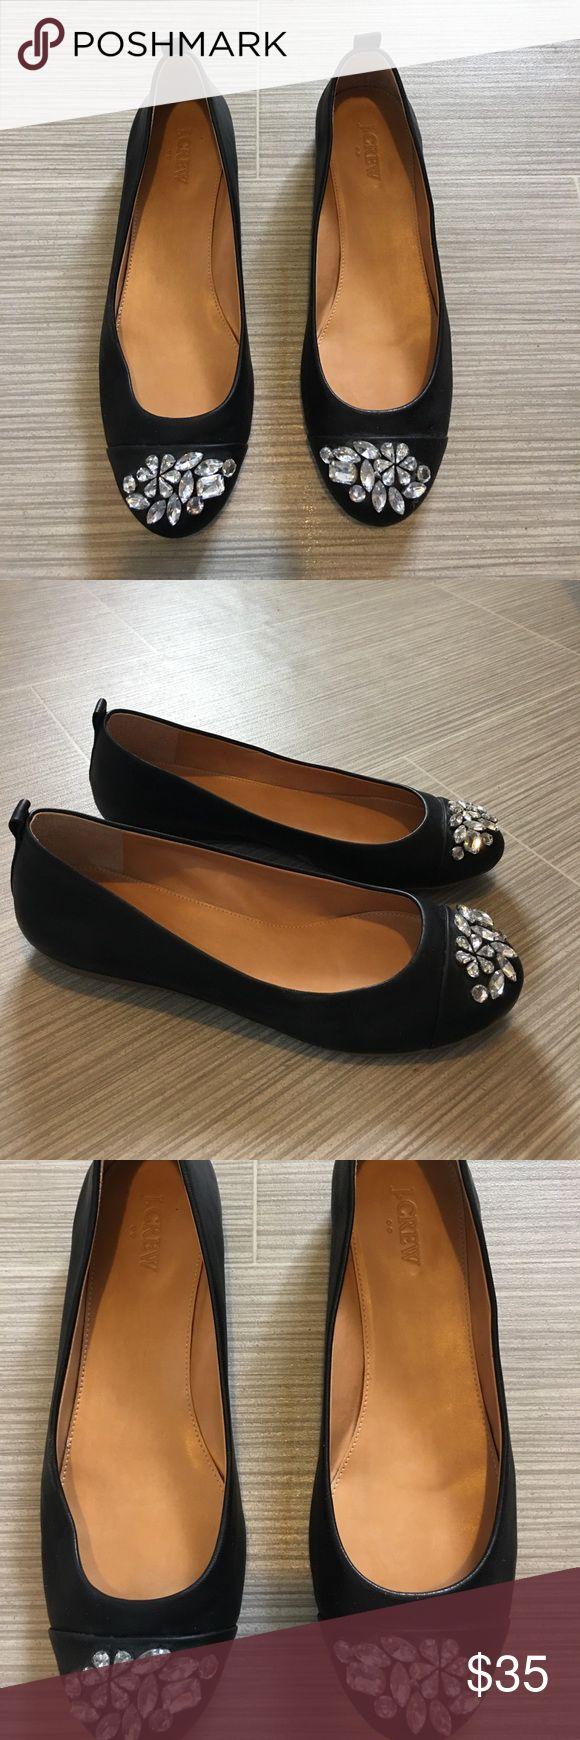 J. Crew black leather flats with crystals size 9 J. Crew black leather flats with crystals size 9. Perfect condition. J. Crew Shoes Flats & Loafers